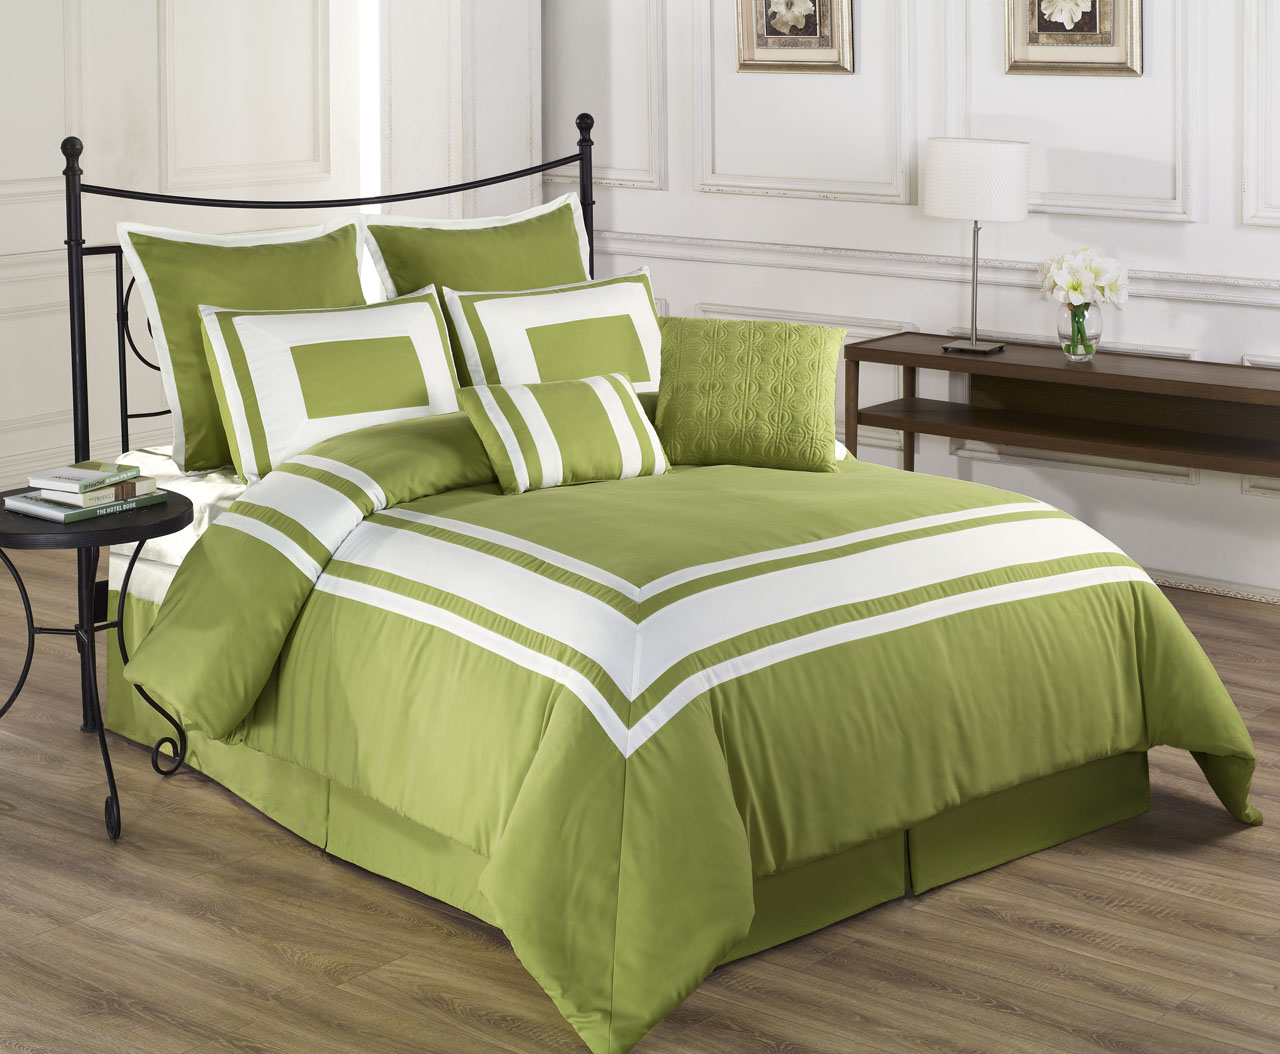 Green bedding set - 8 Piece Queen Lux Decor Pistachio Green Comforter Set